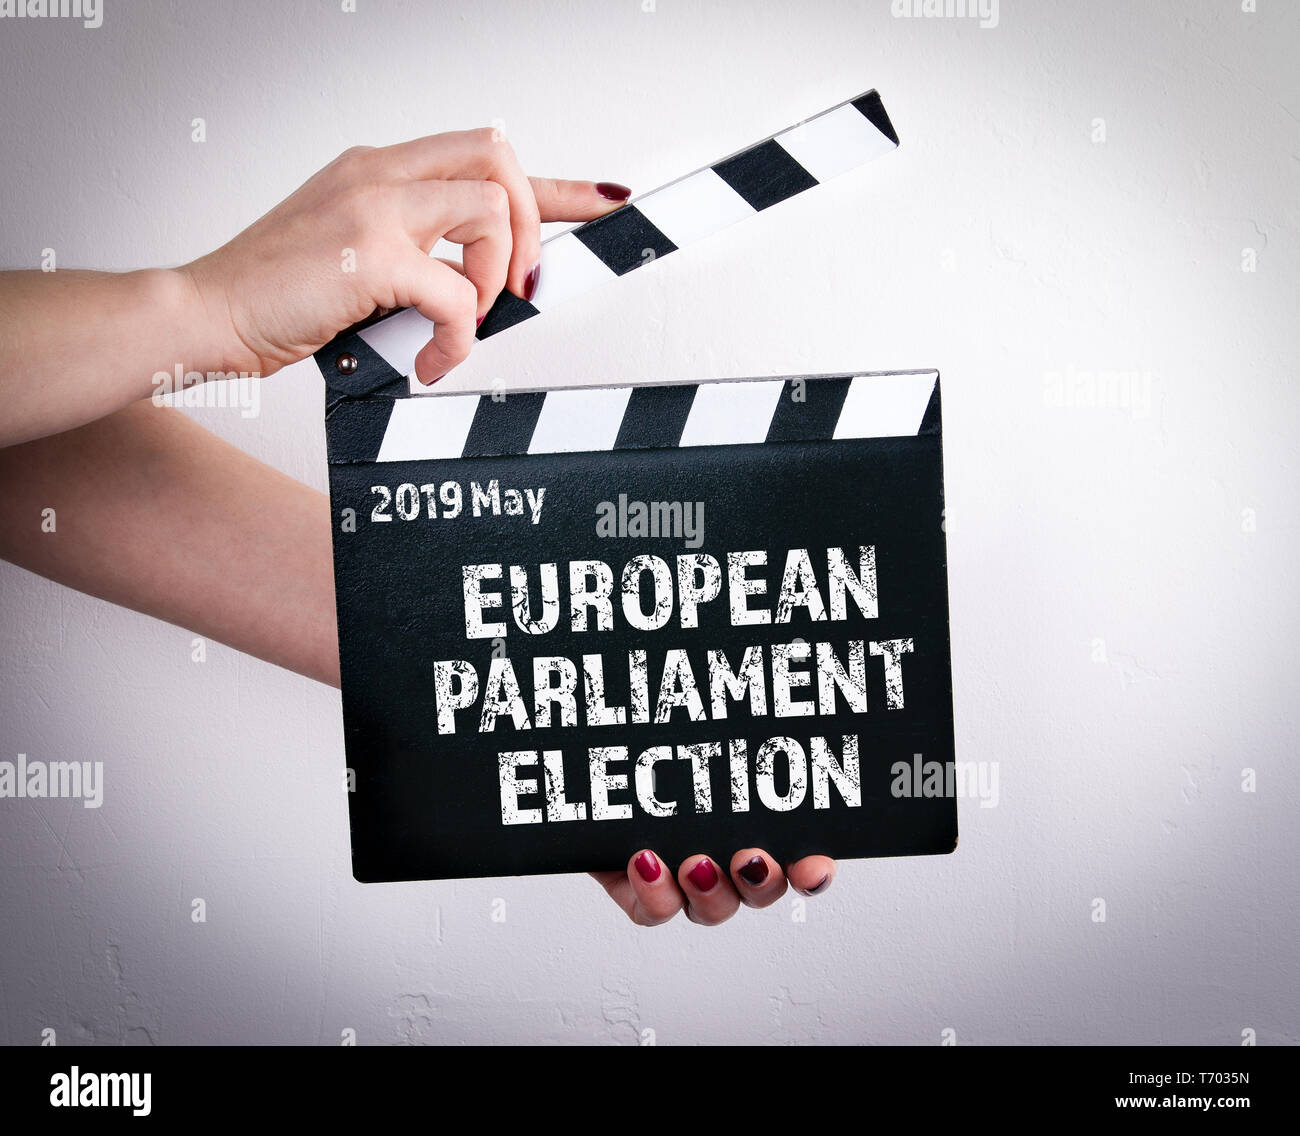 2019 May European Parliament Election - Stock Image